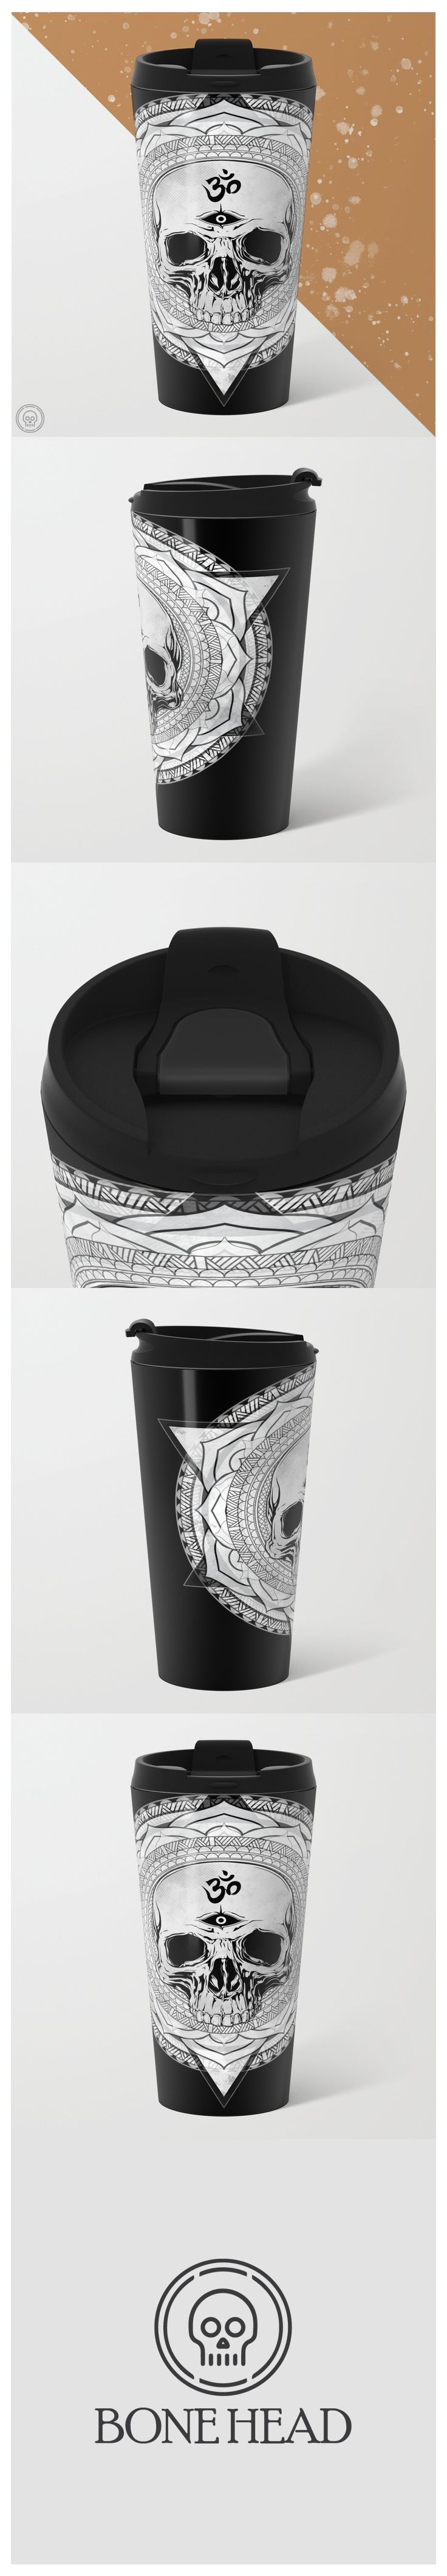 Coffee is ALWAYS a good idea! Now you can awaken more than a drowsy spirit with this beautifully designed travel mug By Bone Head! Featuring an intricately detailed awakened skull mandala, this mug is perfect for aiding in your quiet meditation to an intense yoga session to crushing your next WOD! OH and just so you know these mugs are pretty much indestructible, double-walled insulated ( keep drinks hot or cold) fit in almost any size cup holder, are easy to clean AND have a leak-proof top!